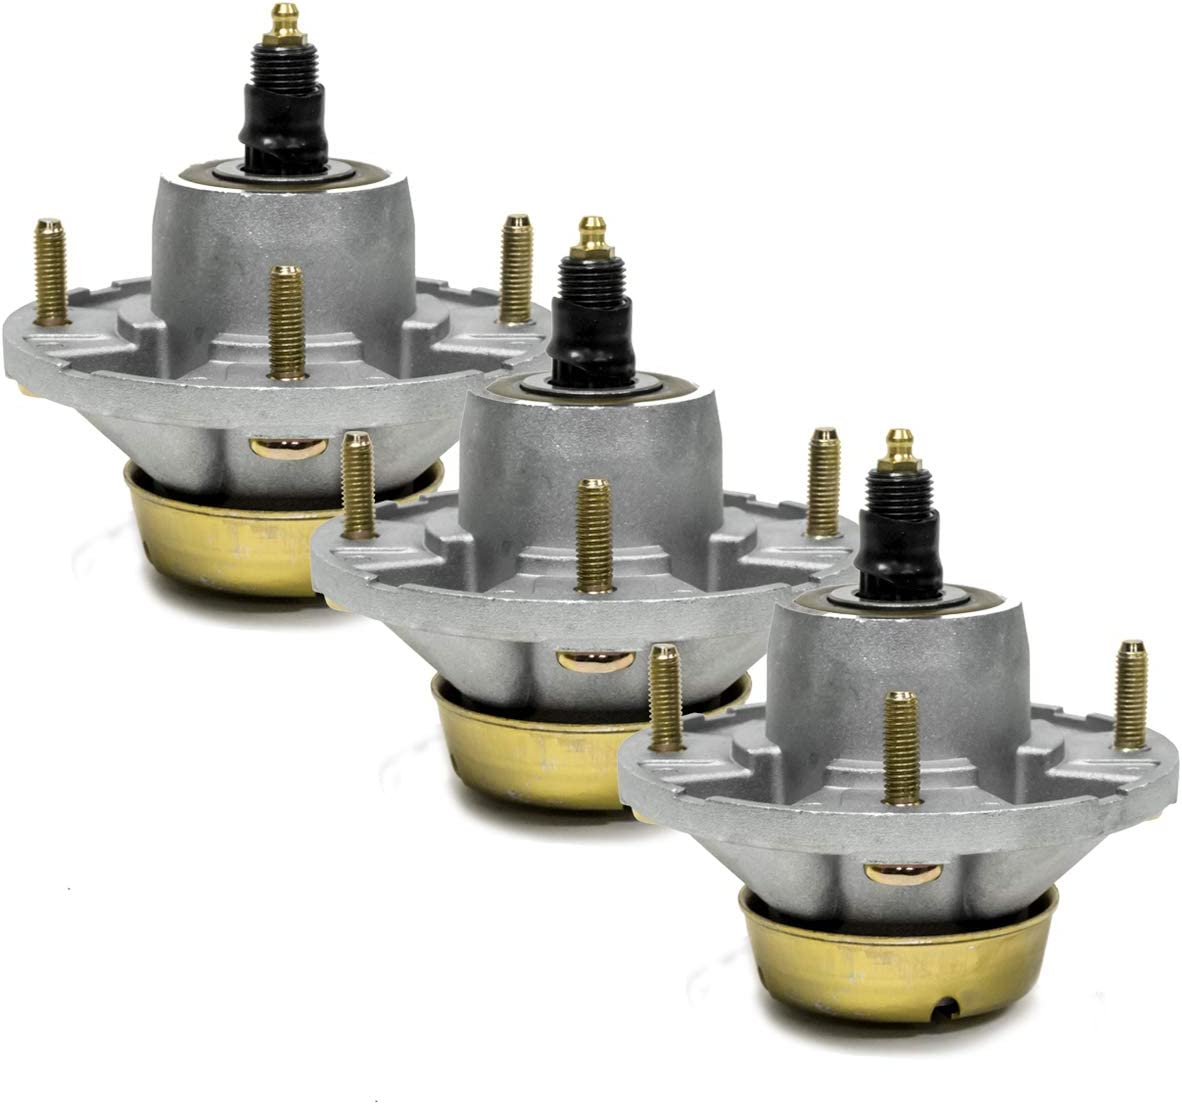 Amazon.com : Replaces John Deere 3pk Spindle Assembly for Zero Turn Mower  Z425 Z445 48